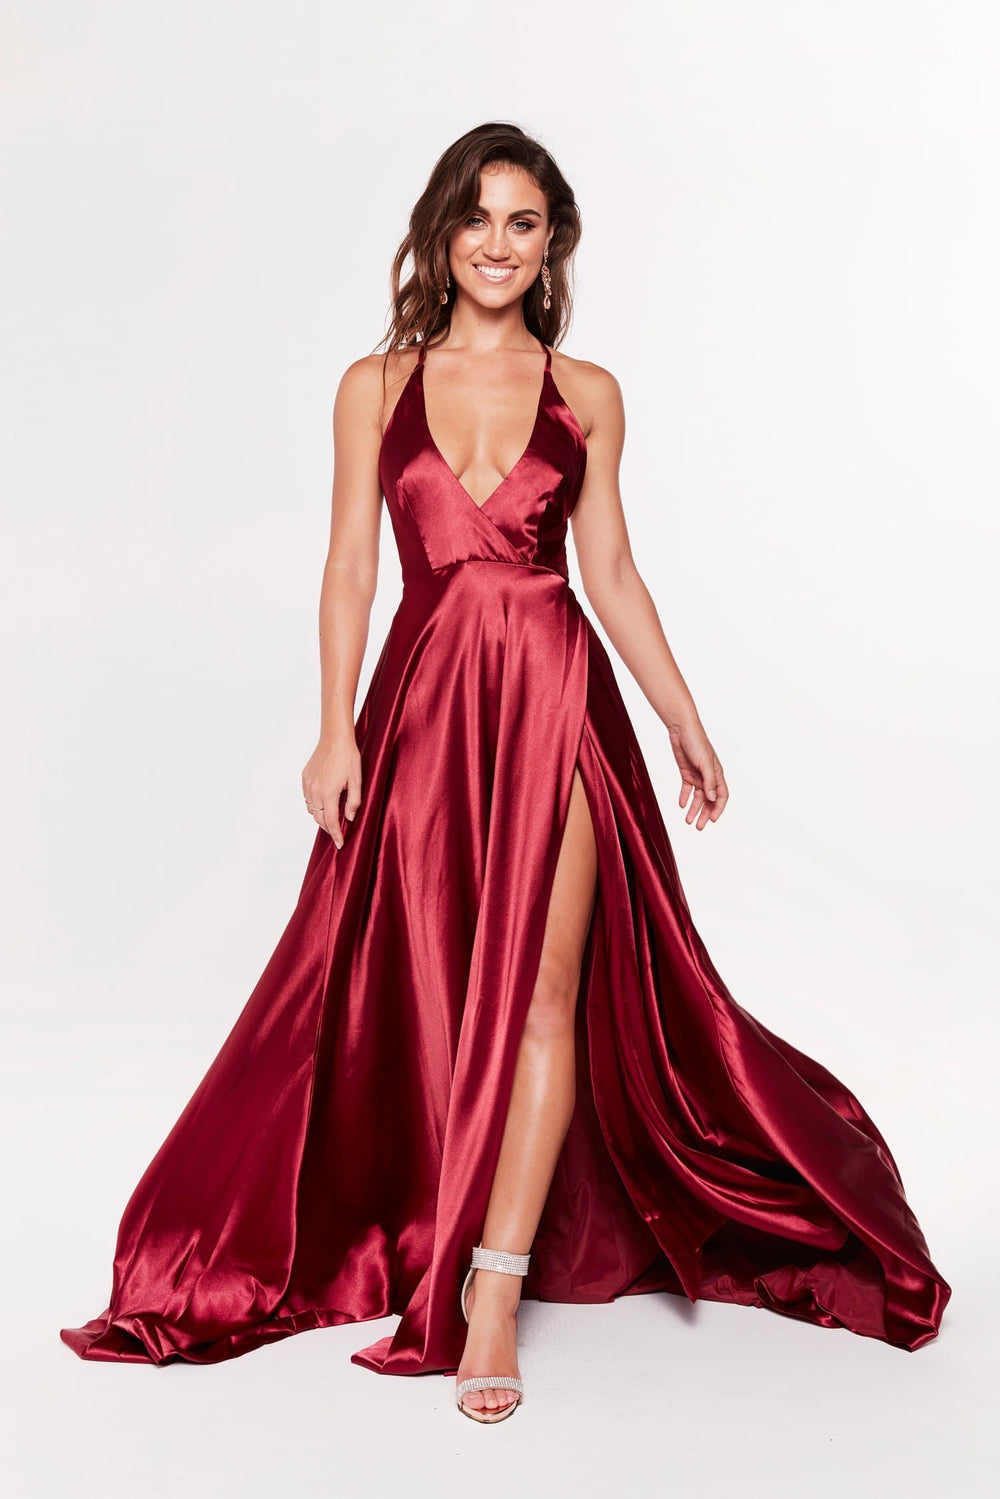 A&N Dimah - Burgundy Satin Gown with Plunge Neckline and Front Slit